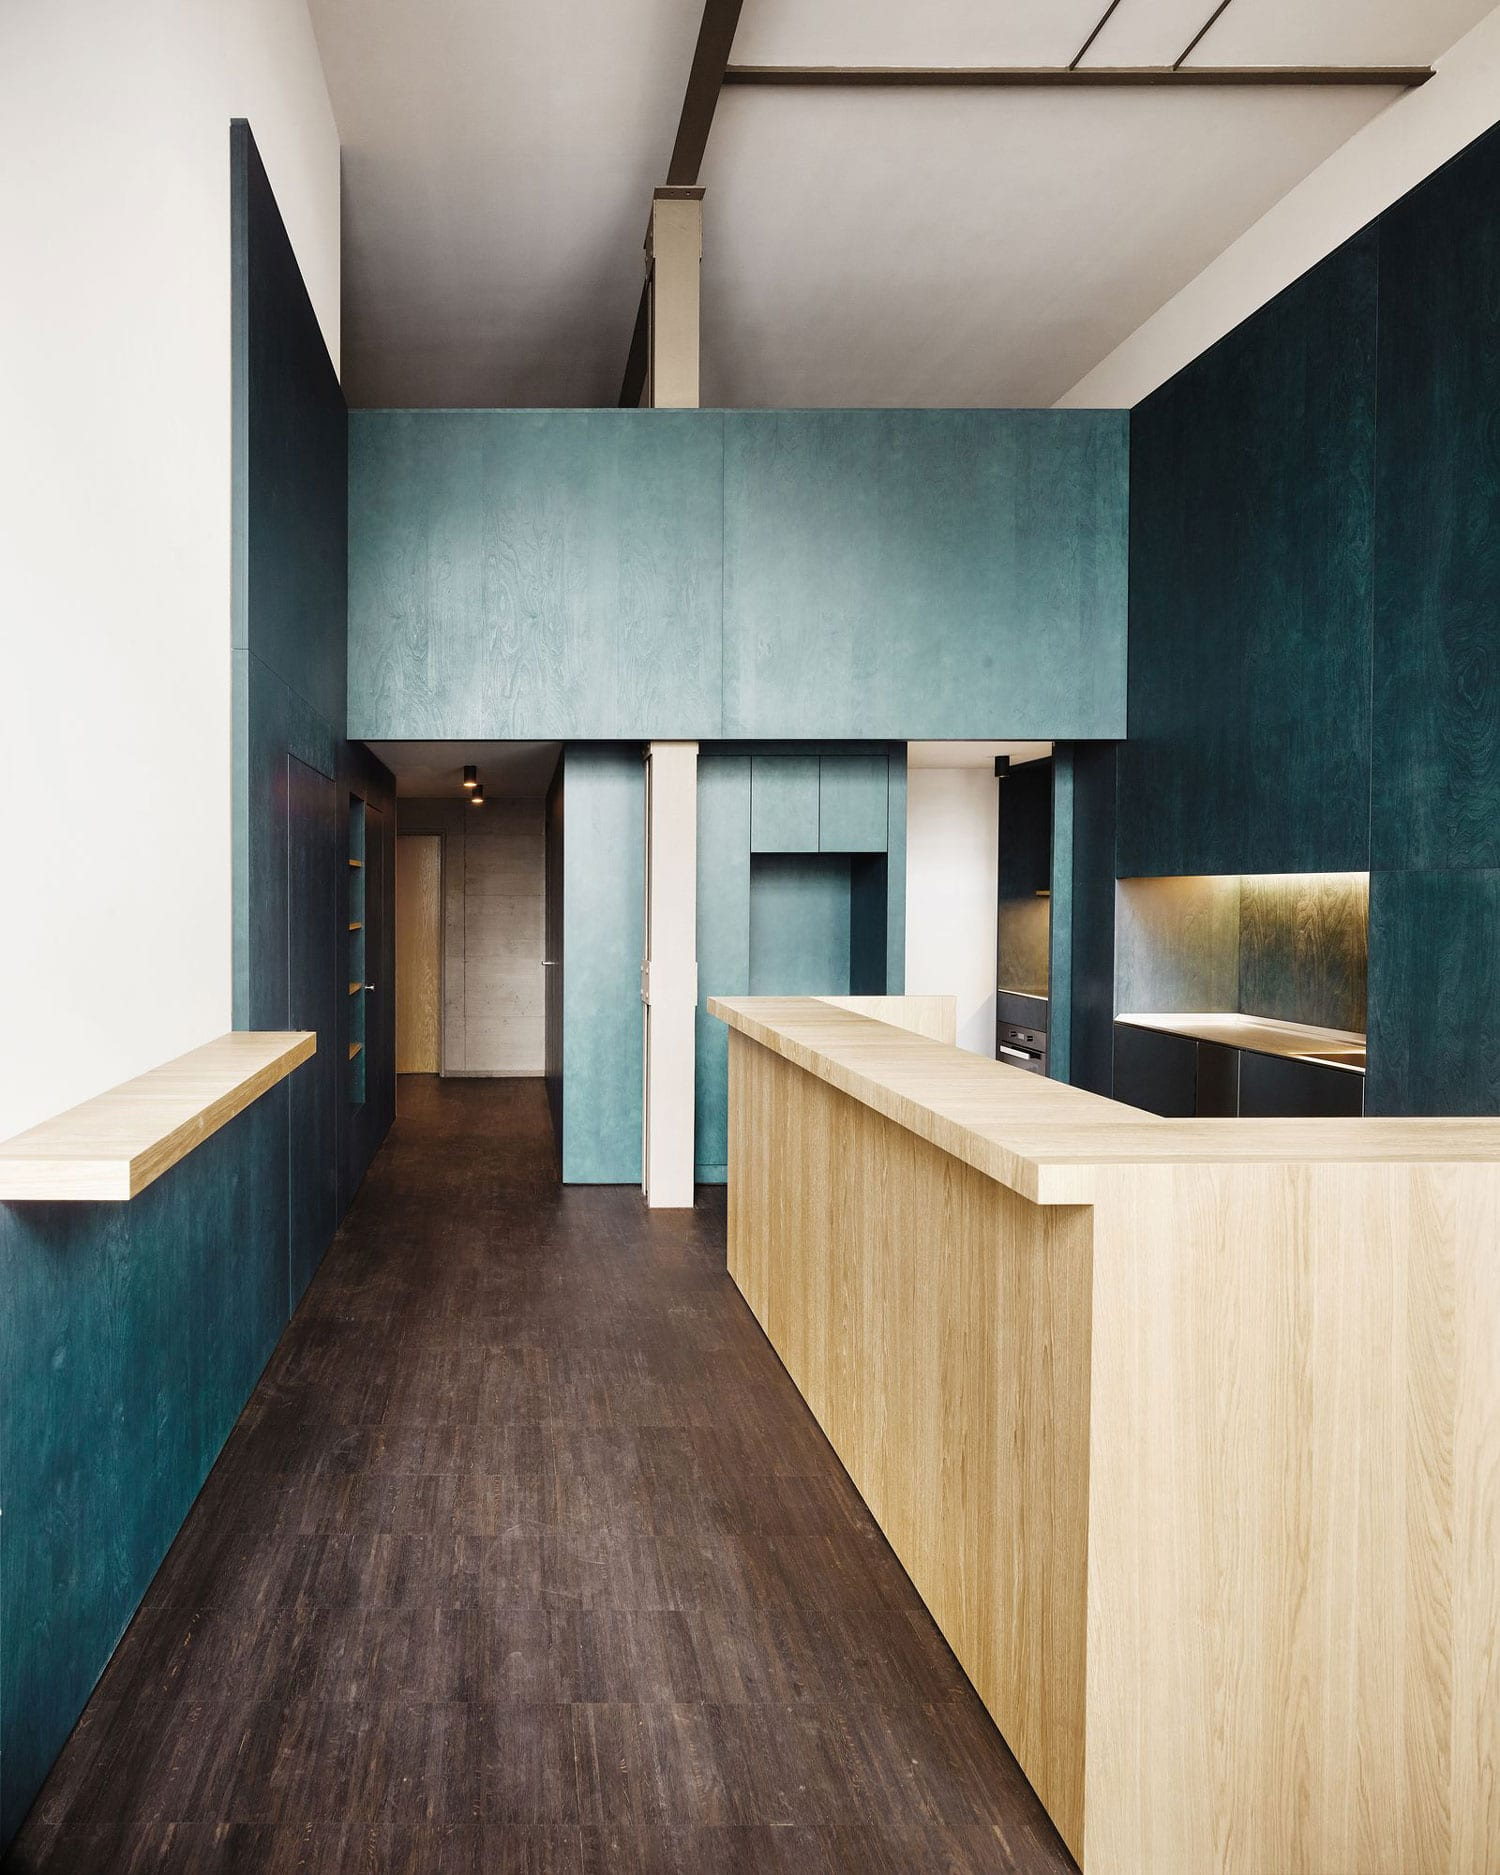 Business Center 1905 & Co-Working Space in Baden, Switzerland by Oliver Christen | Yellowtrace